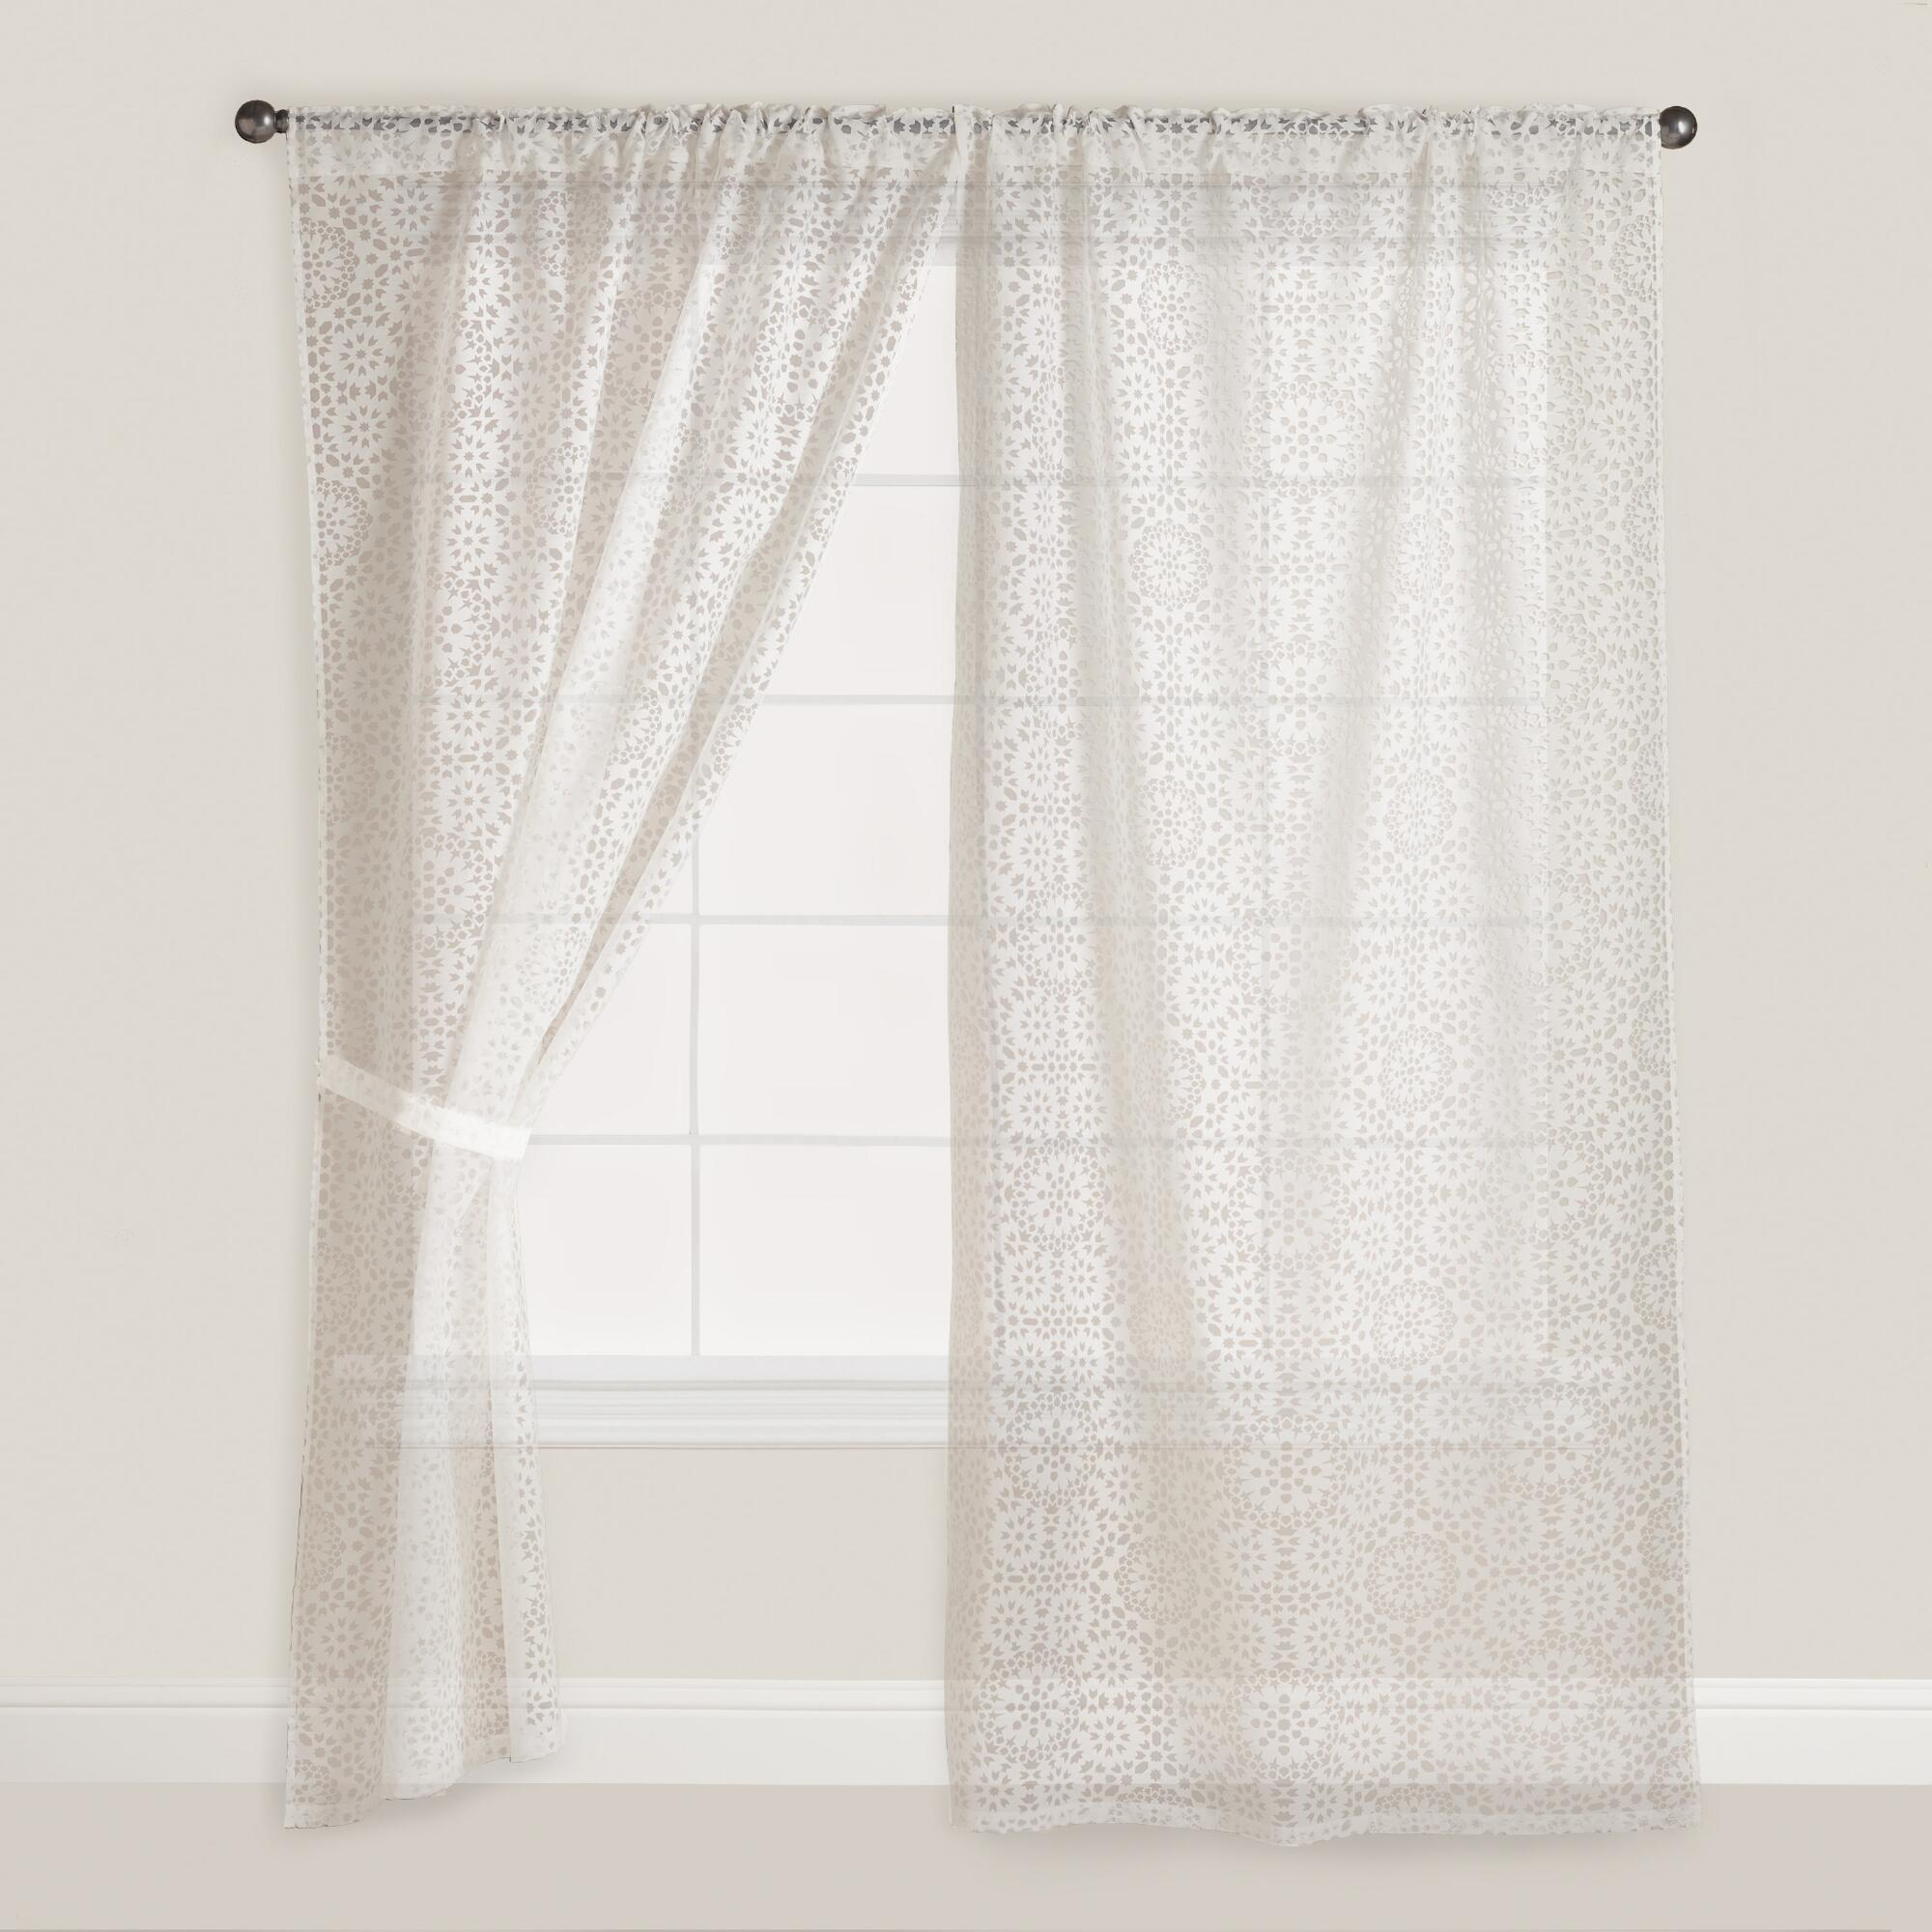 Burnout Curtains Mosaic Sheer Bur...